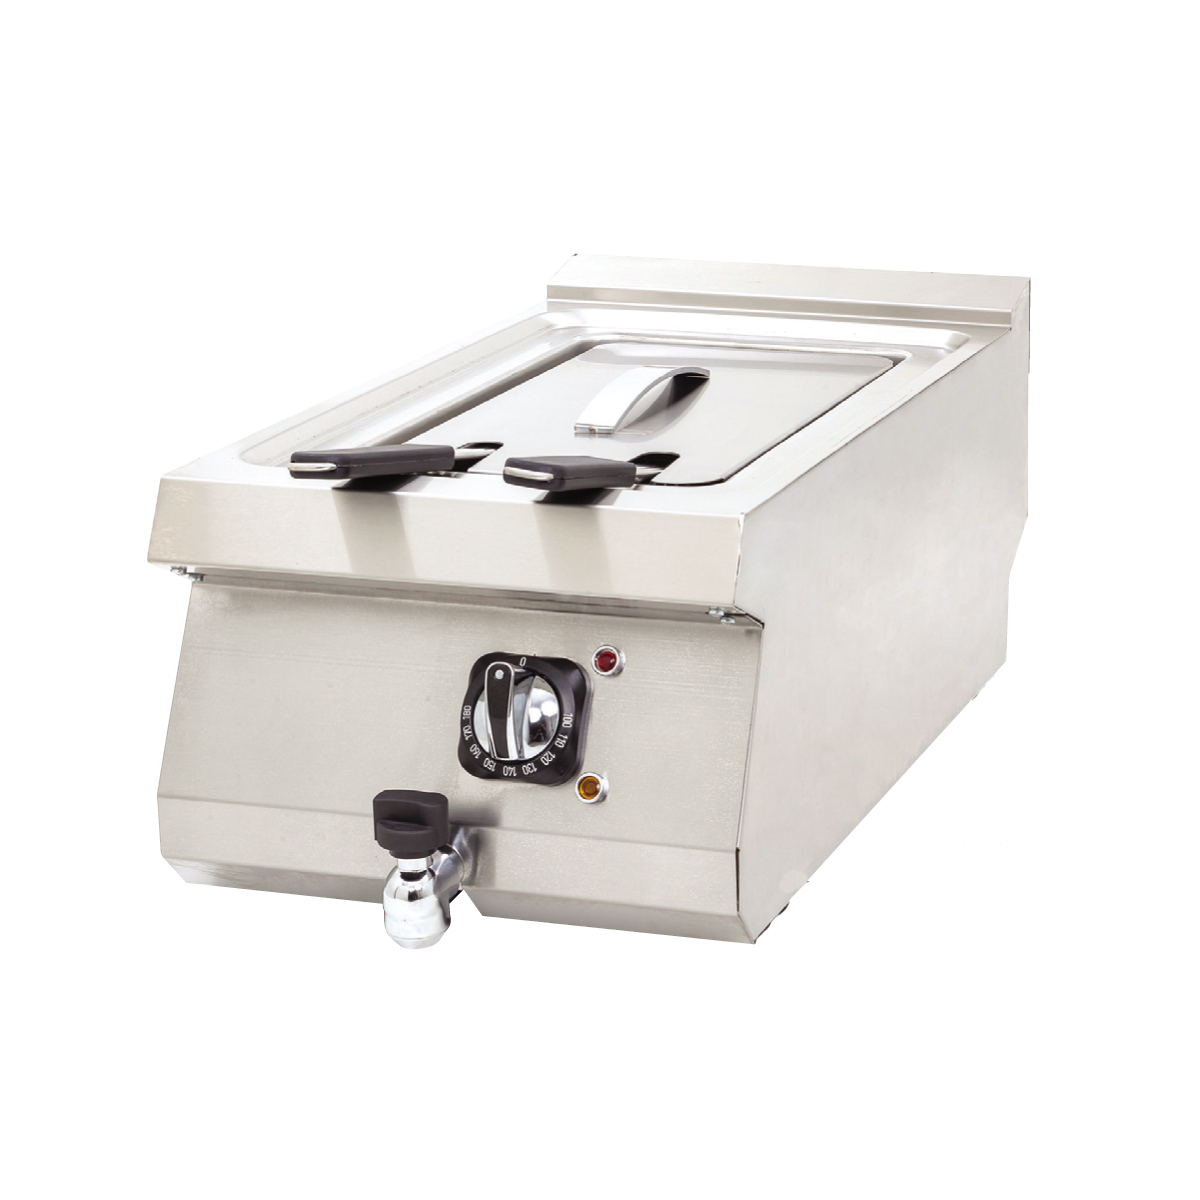 Electric Fryer - 40x70